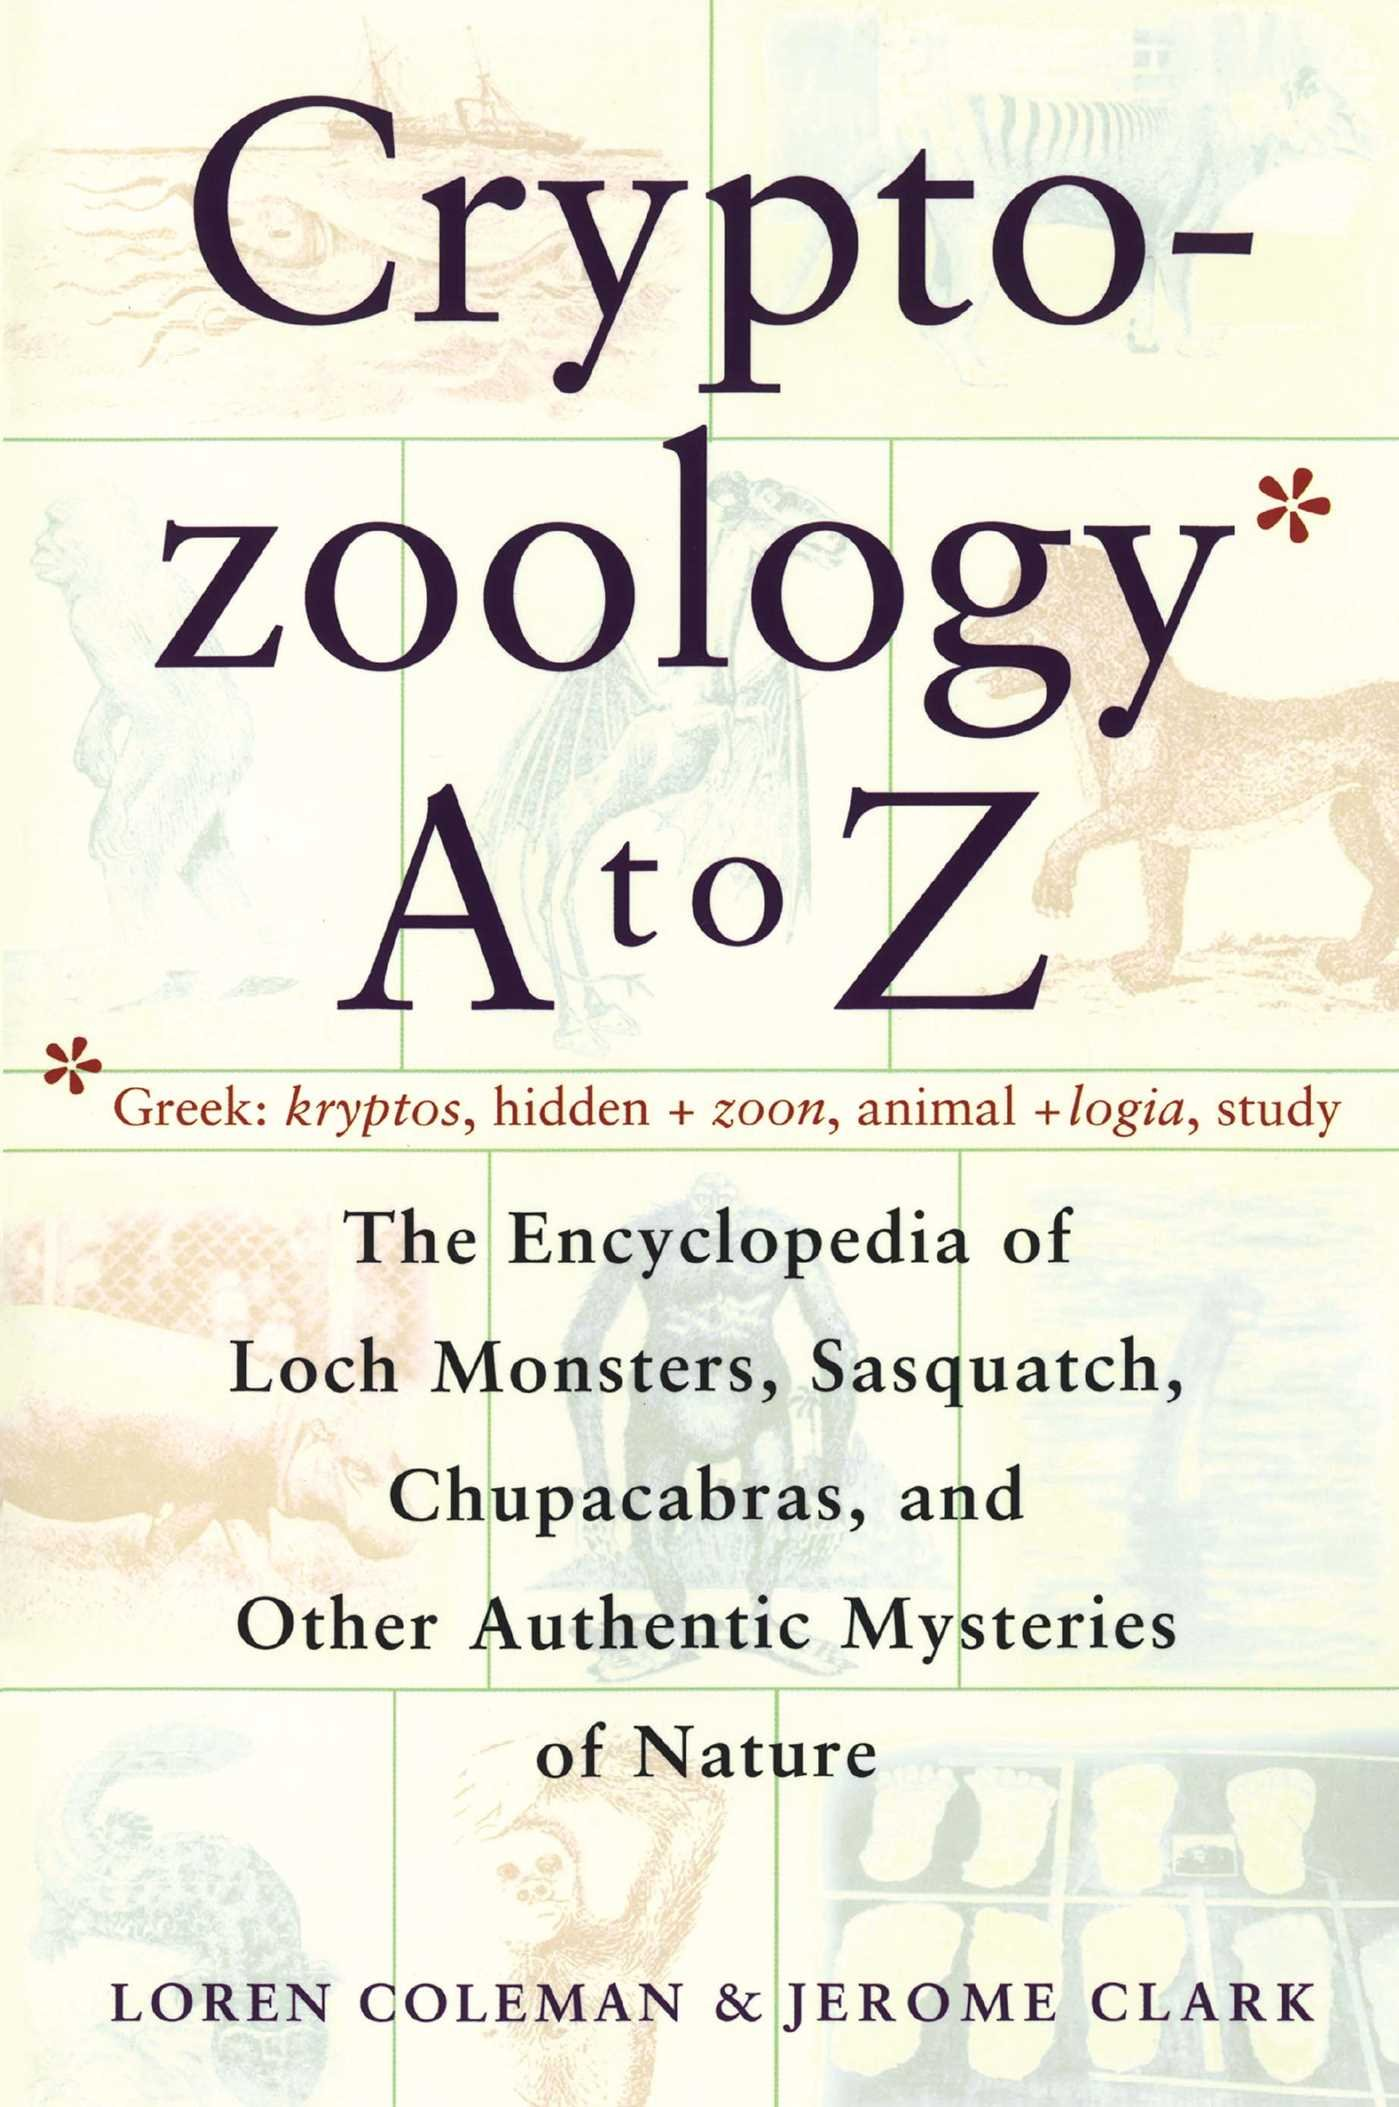 Cryptozoology A To Z The Encyclopedia Of Loch Monsters Sasquatch Chupacabras And Other Authentic Mysteries Nature Loren Coleman Jerome Clark